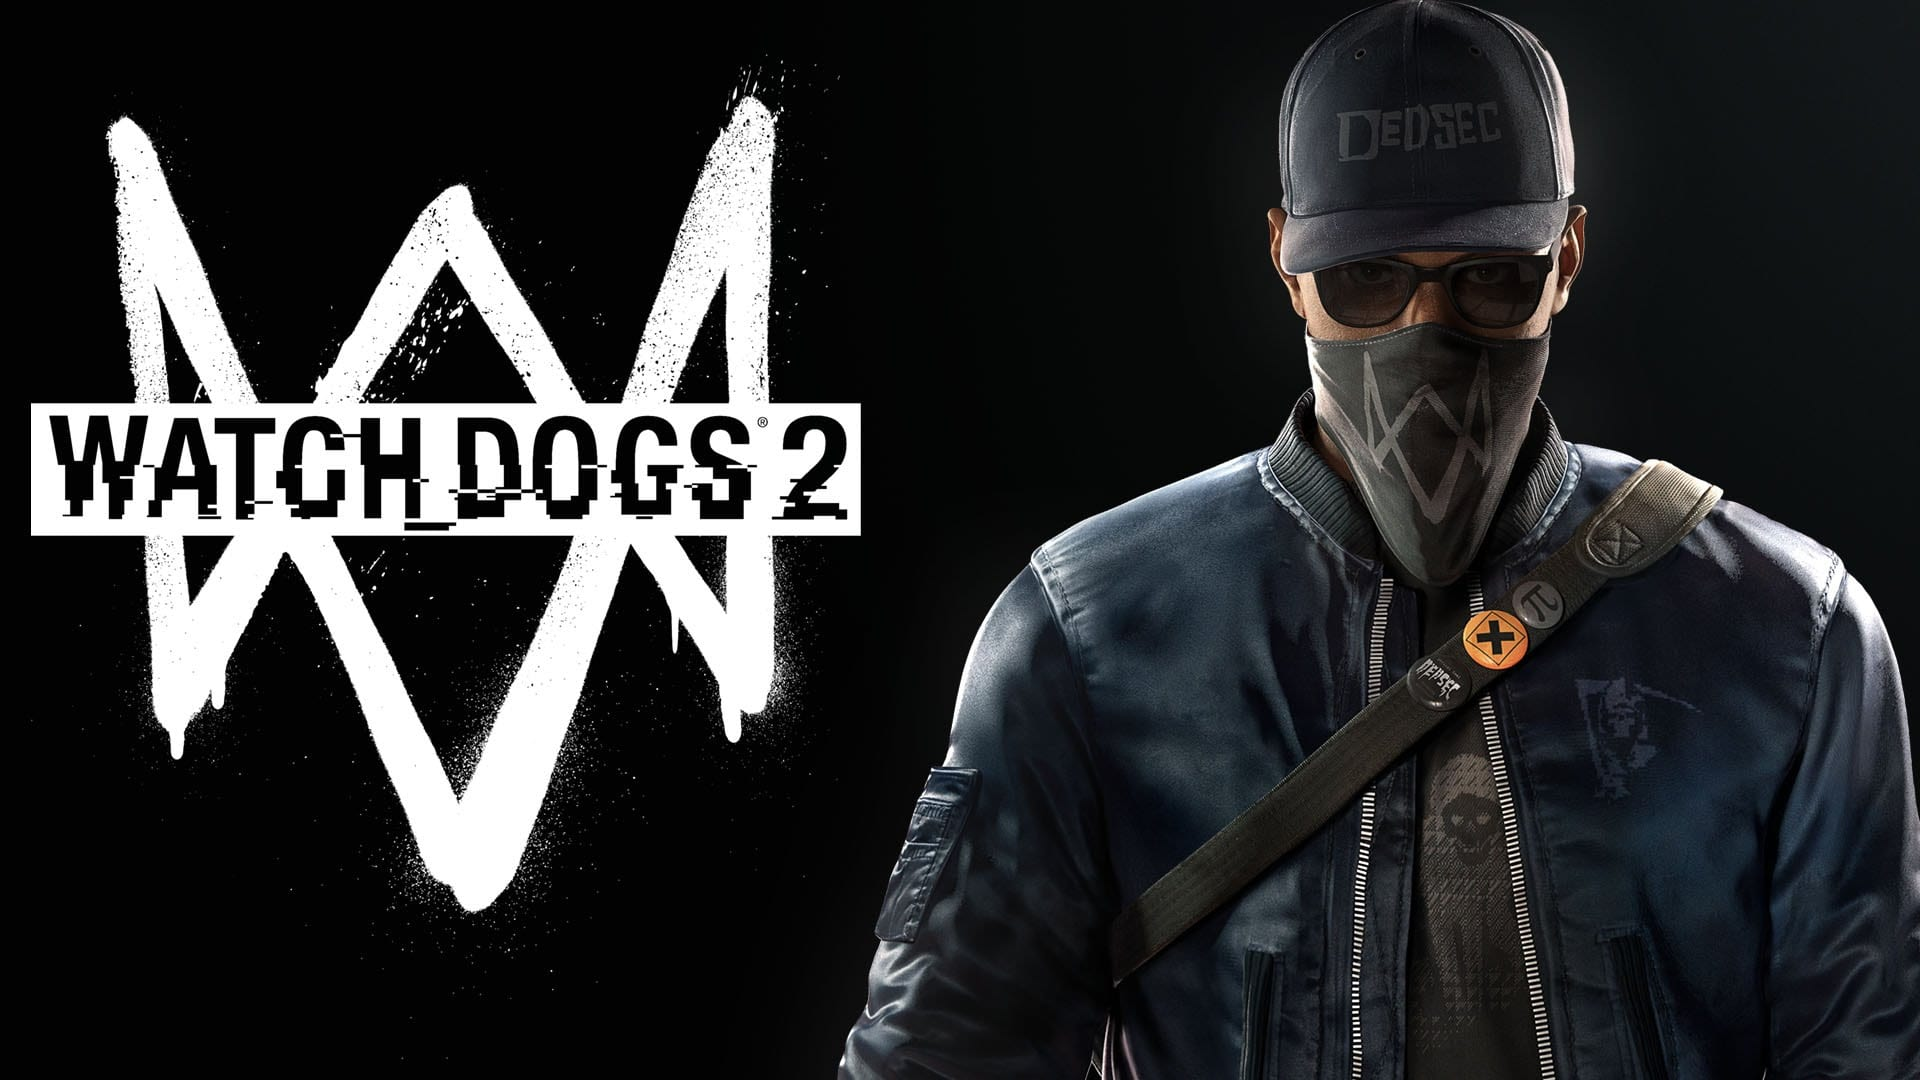 Gta San Andreas Wallpaper Hd Watch Dogs 2 Recensione Pc Gaming It